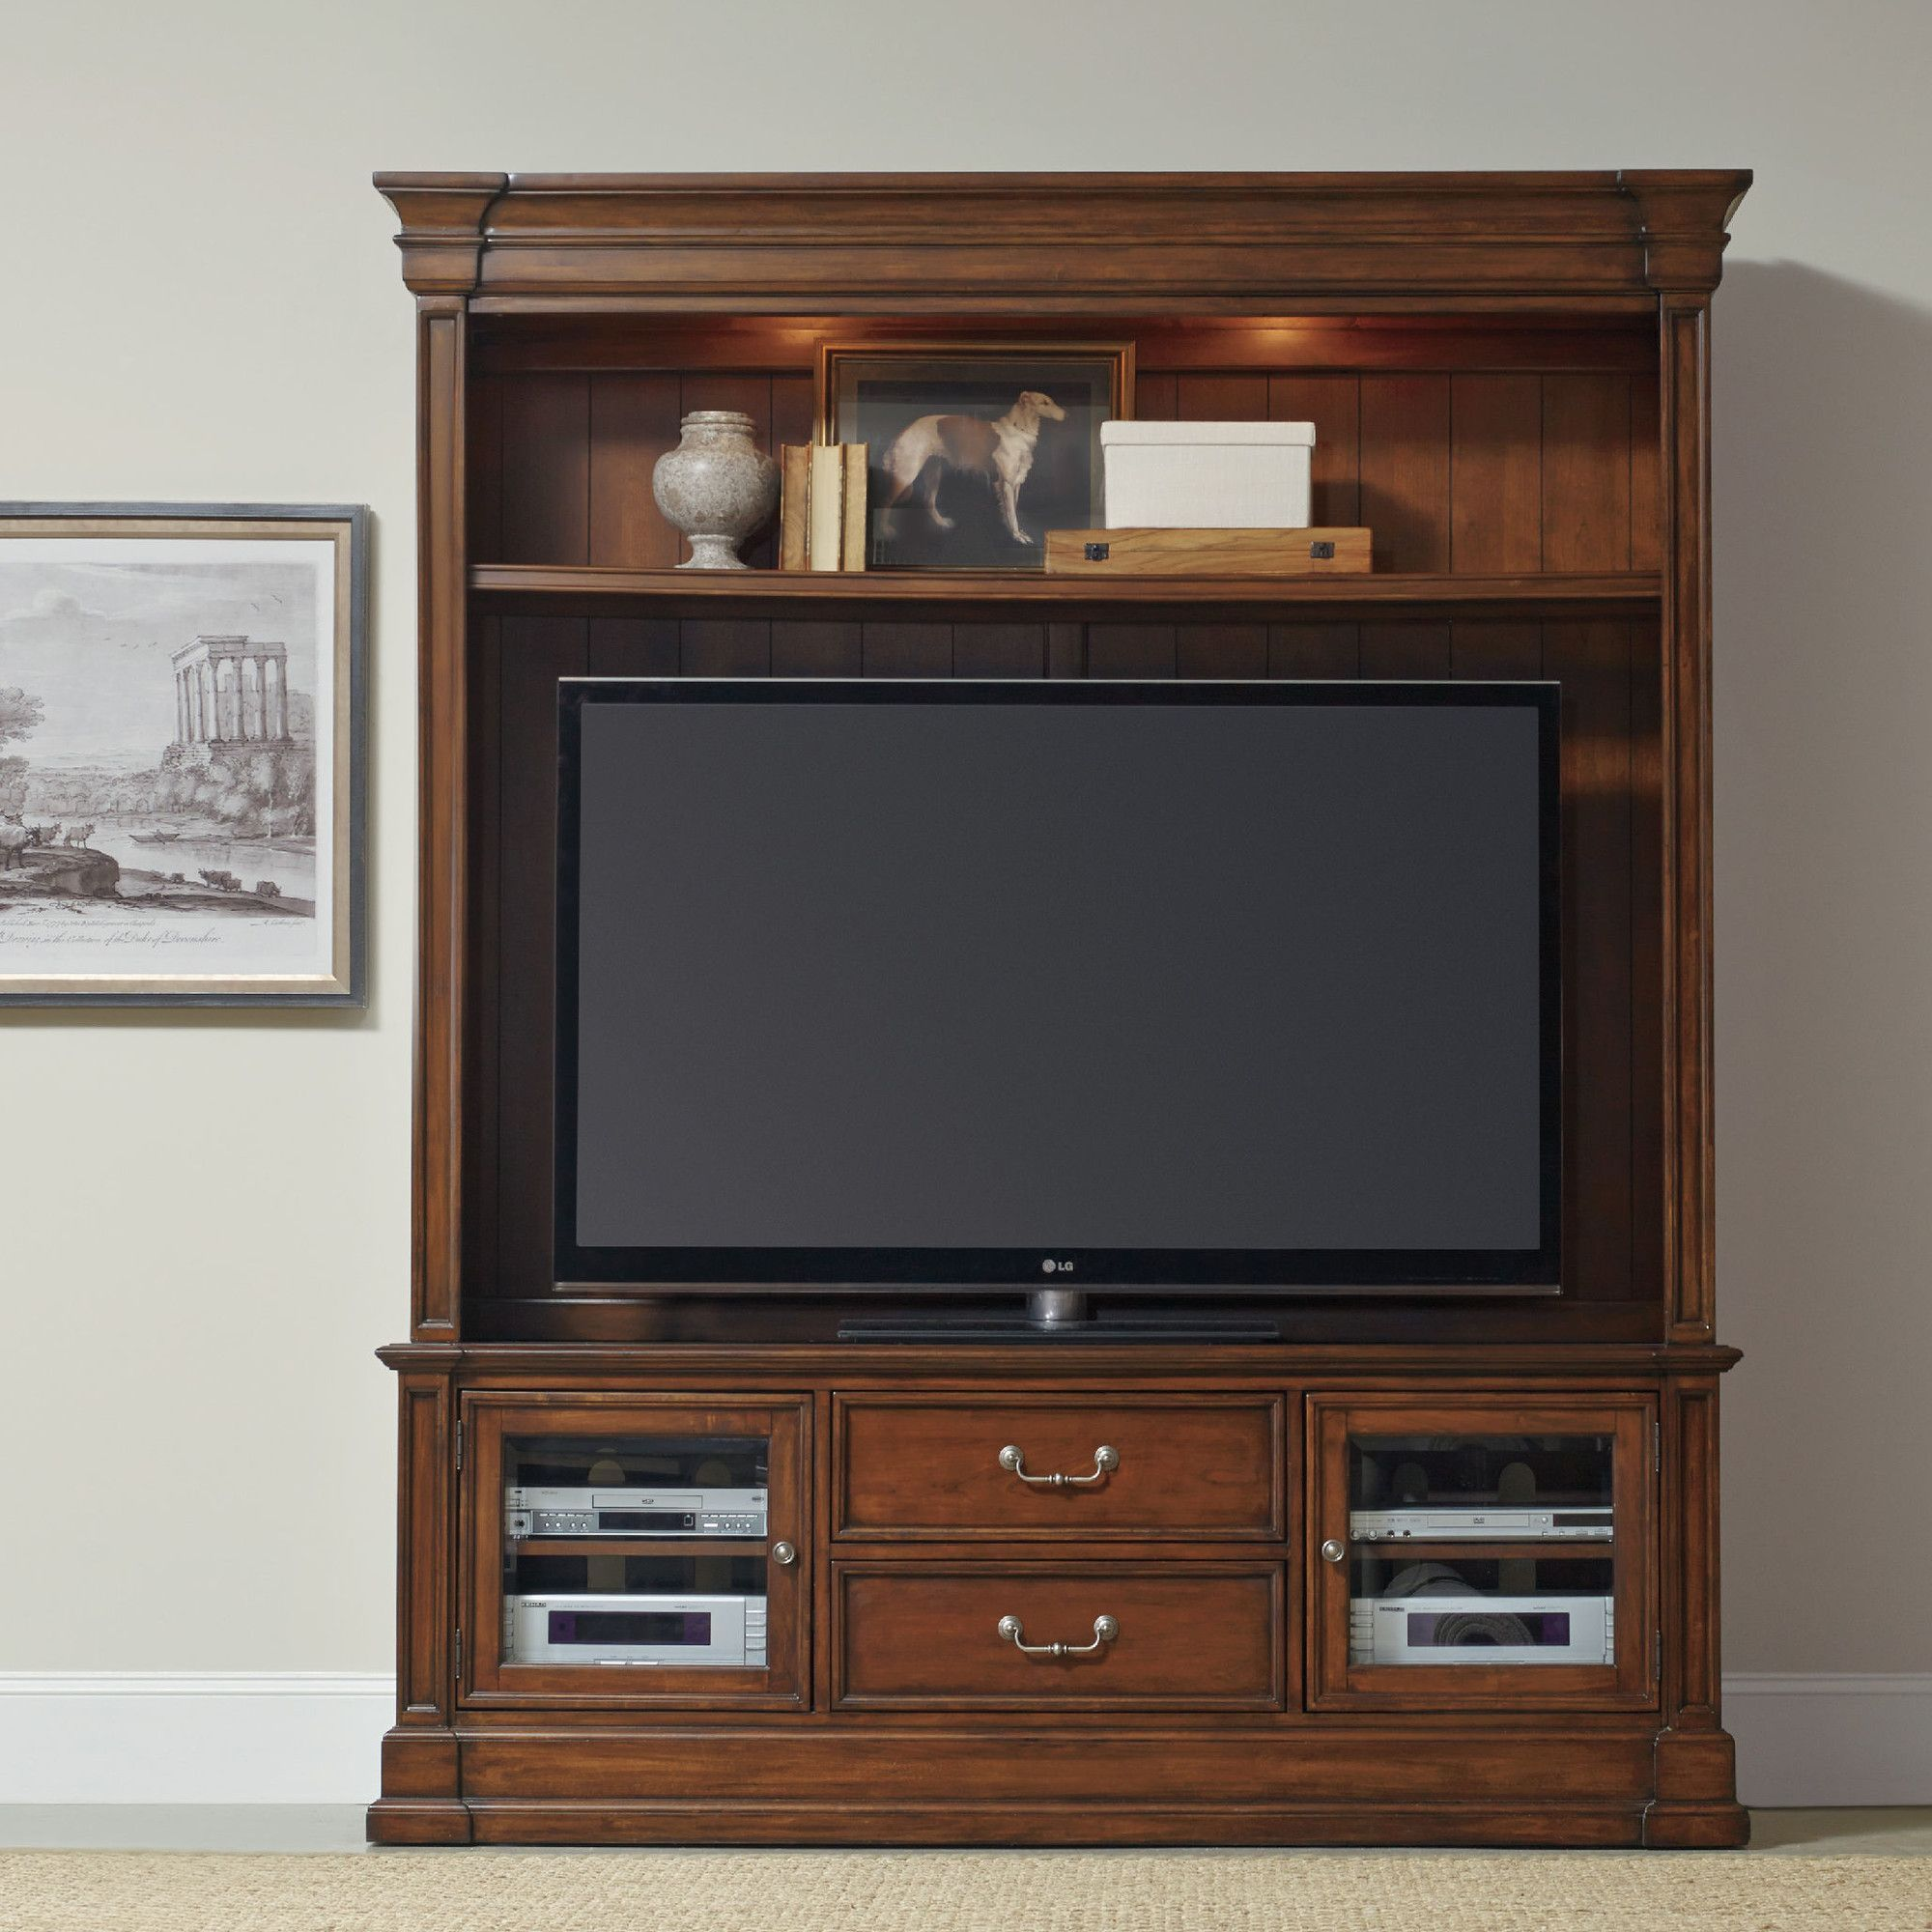 Clermont base products pinterest furniture hooker furniture